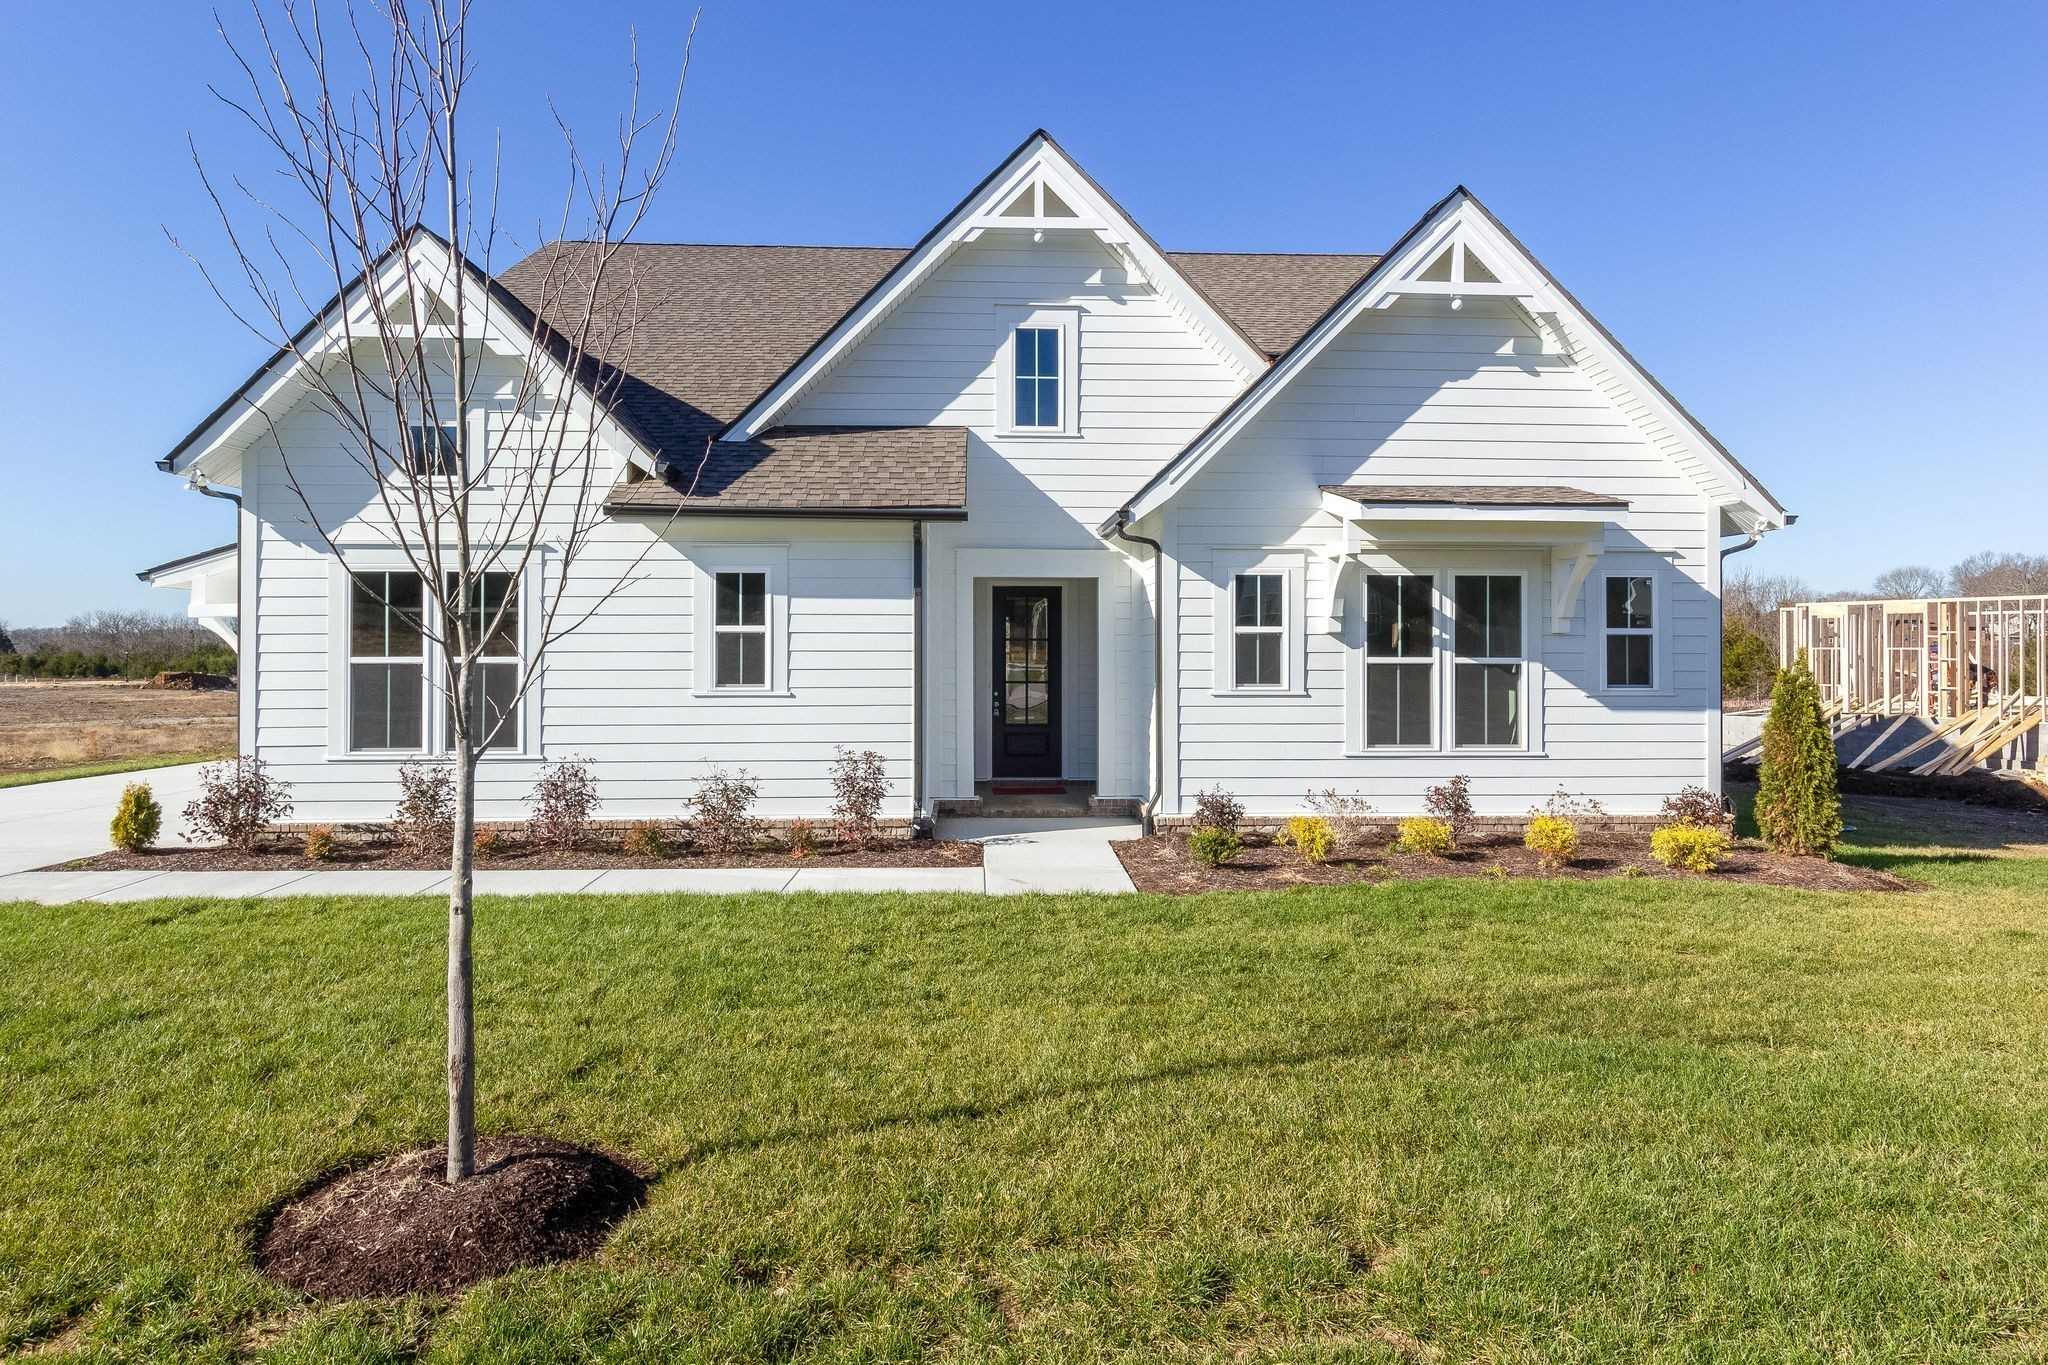 803 Overton Dr Lot 31 Property Photo - Mount Juliet, TN real estate listing